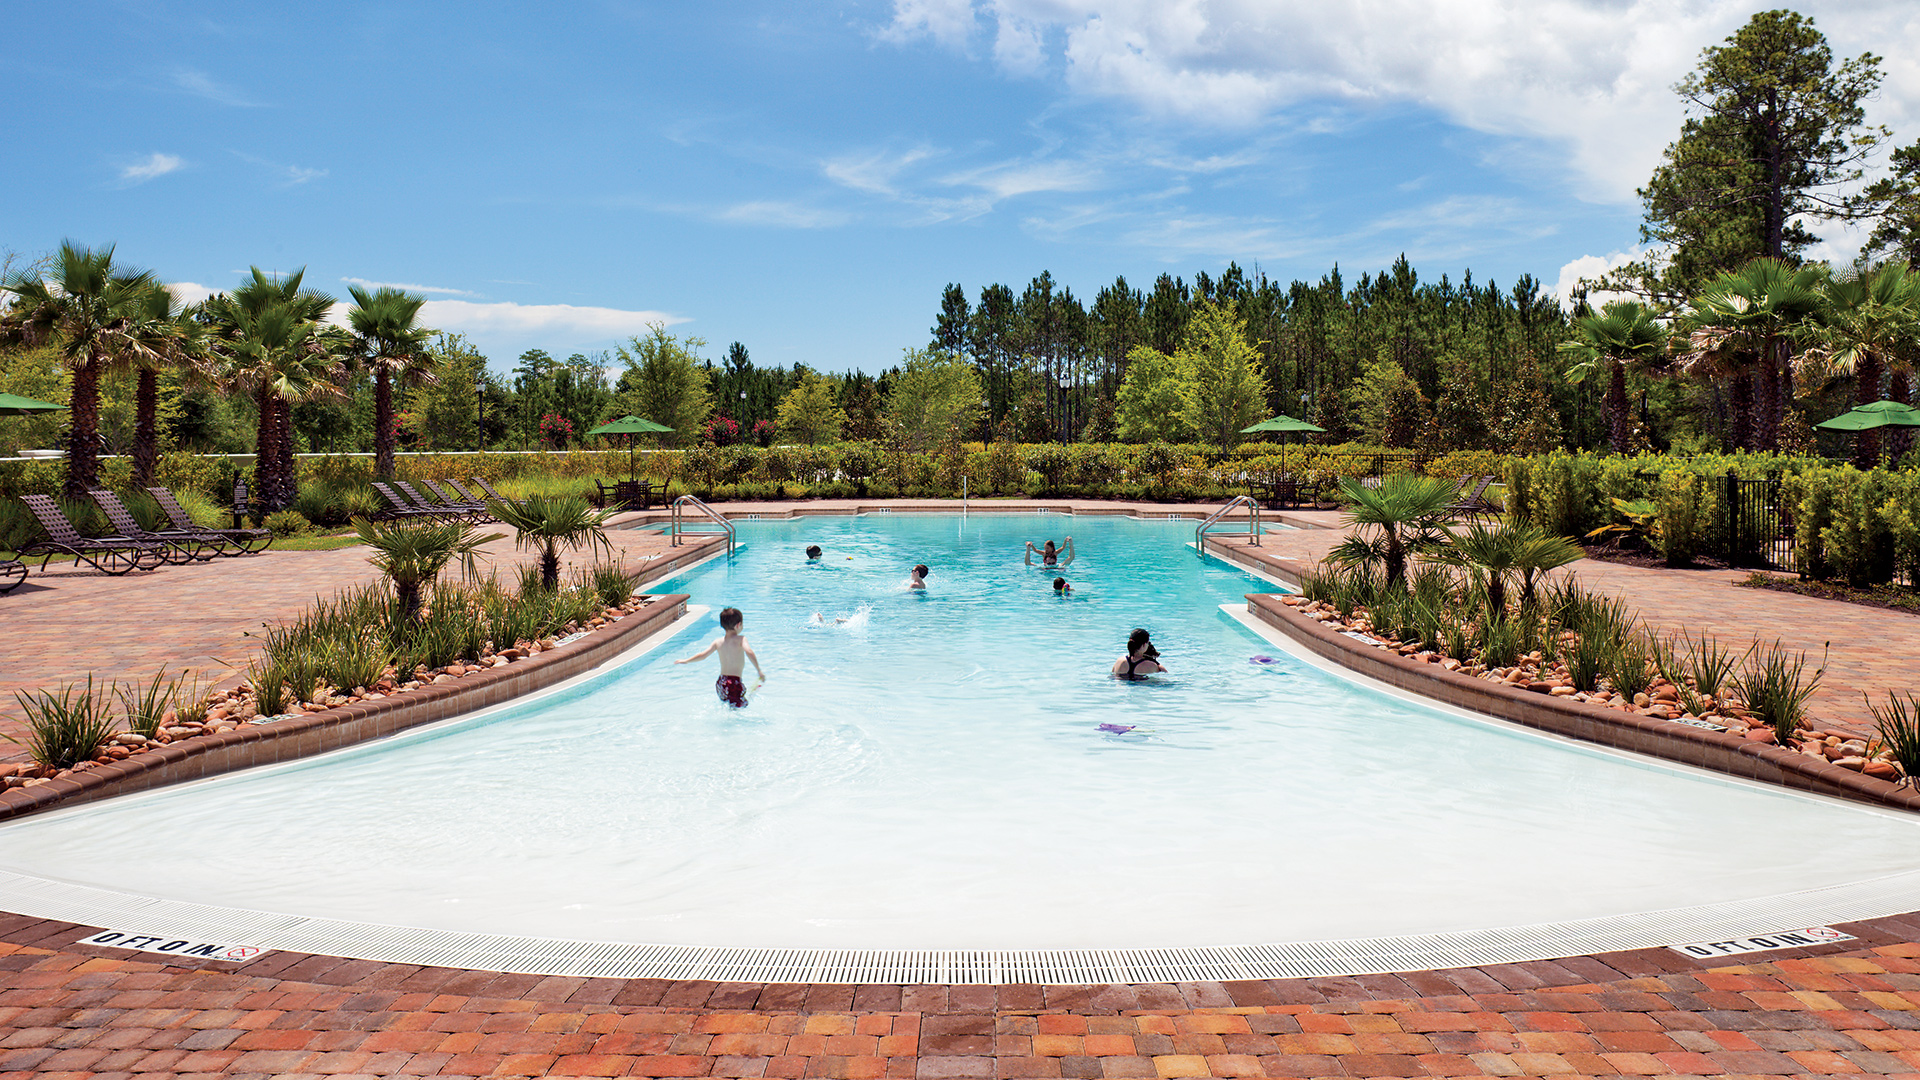 Ponte vedra fl new homes master planned community - Is there sales tax on swimming pools ...